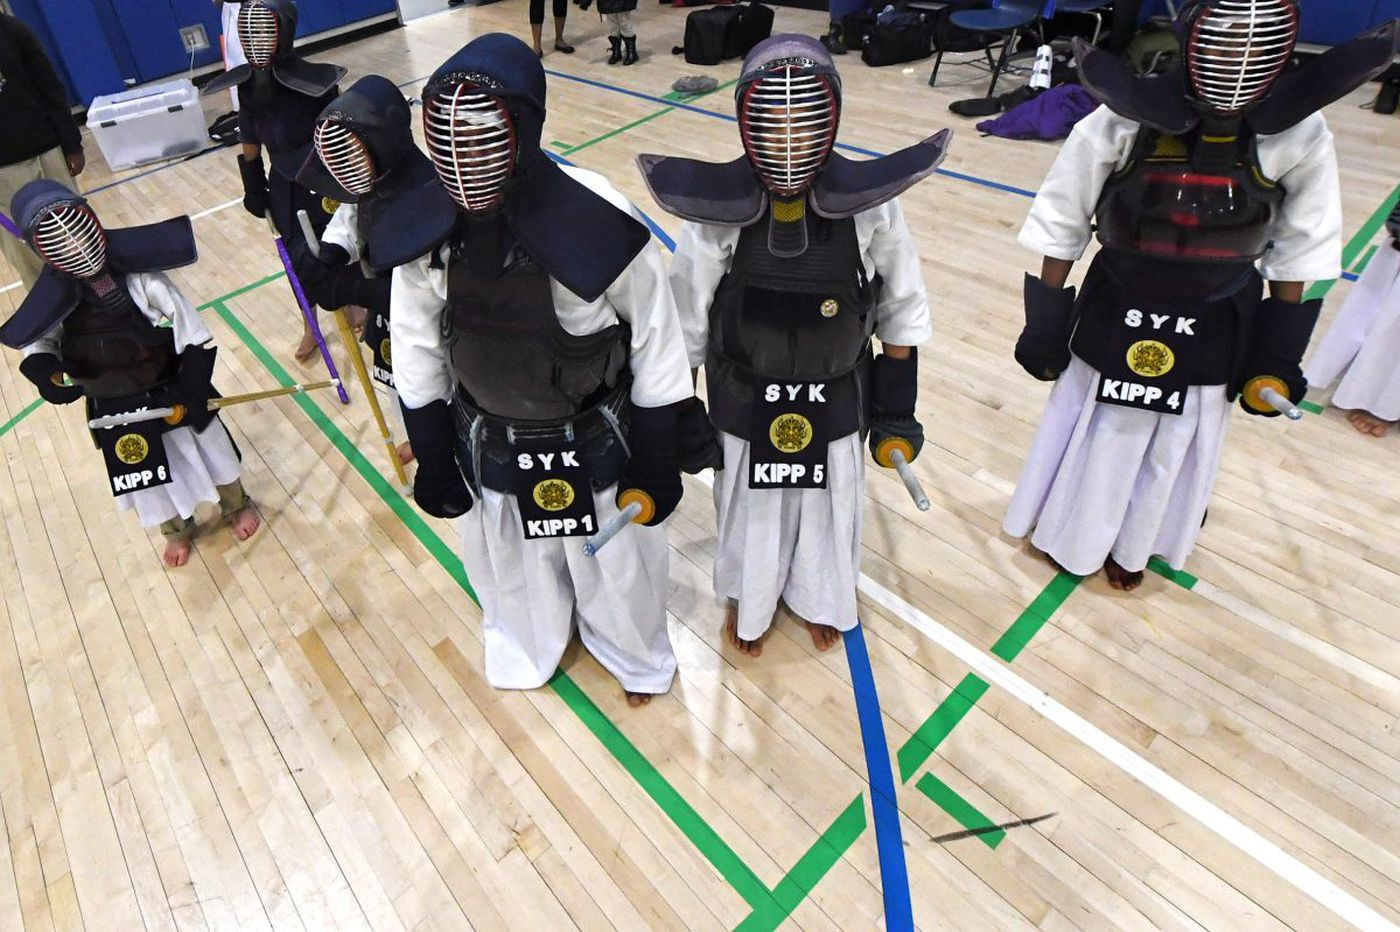 It's called the 'golf of martial arts,' but this Camden school is making Kumdo more inclusive